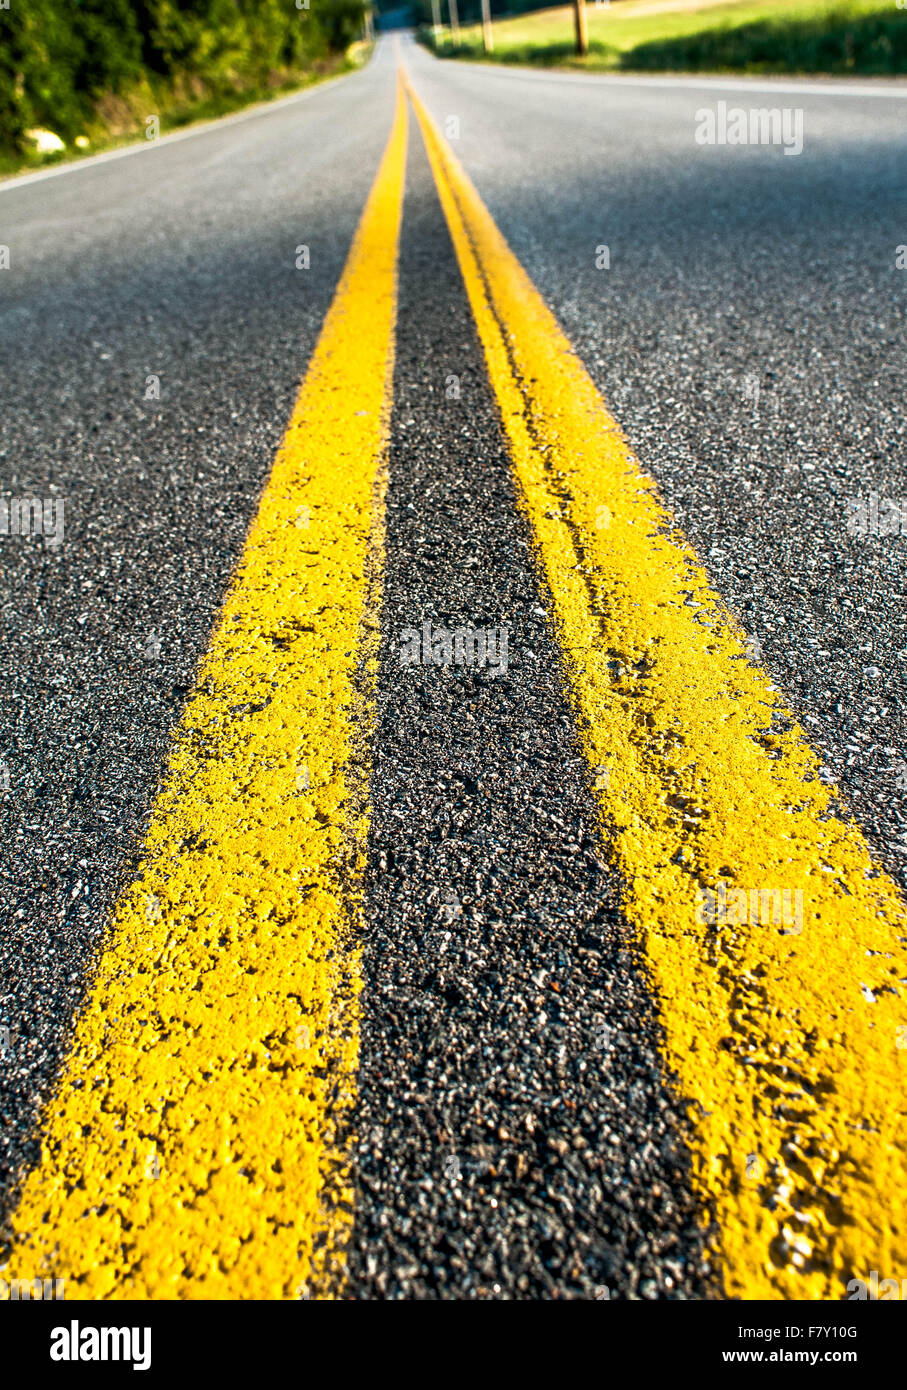 A double yellow line on a country road fading into the distance. - Stock Image